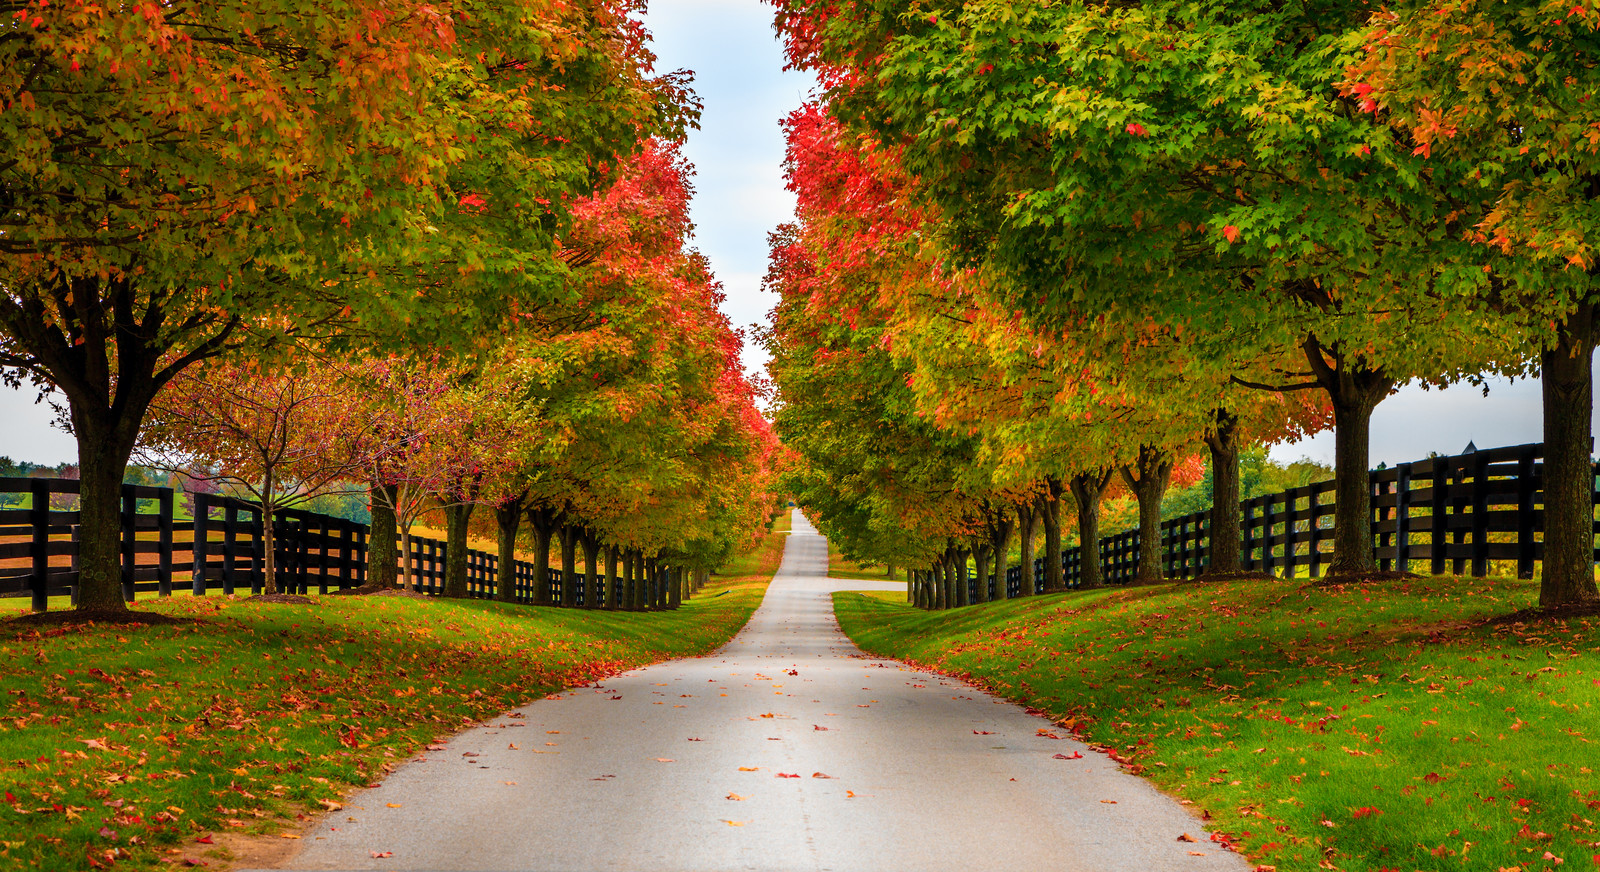 Top 5 Places To Retire in Kentucky - Empty black topped road between horse farms with trees turning colors in early fall, dark green grass, and dark brown fence lining the road